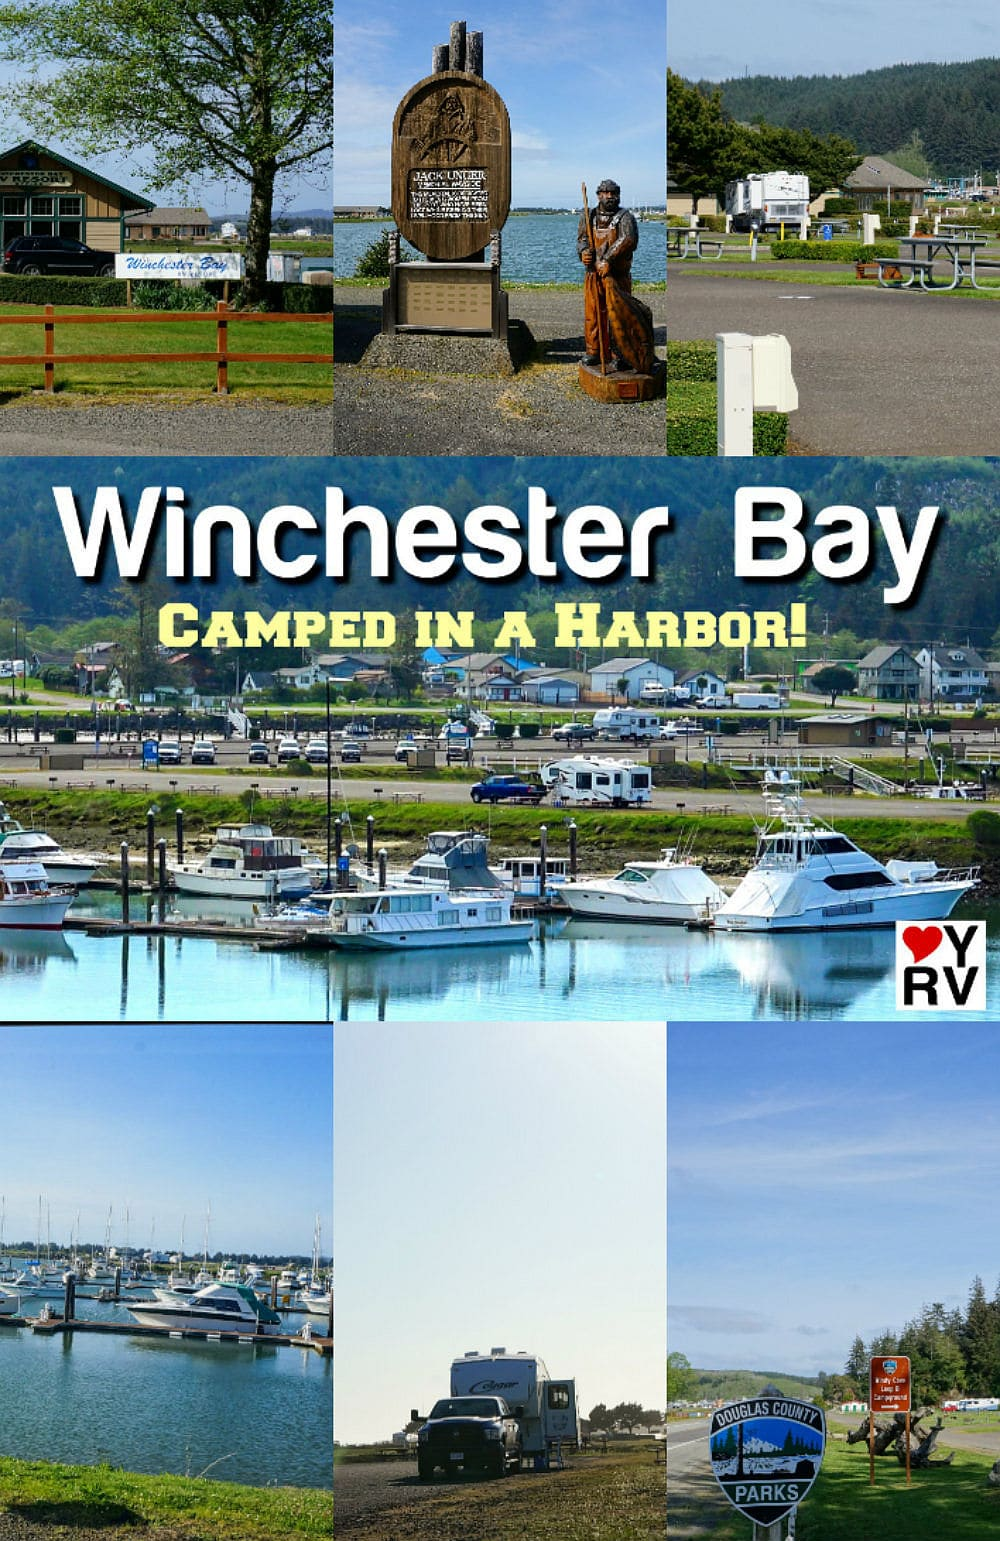 Winchester Bay Salmon Harbor Marina Camping on the Oregon Coast - Love Your RV -https://www.loveyourrv.com